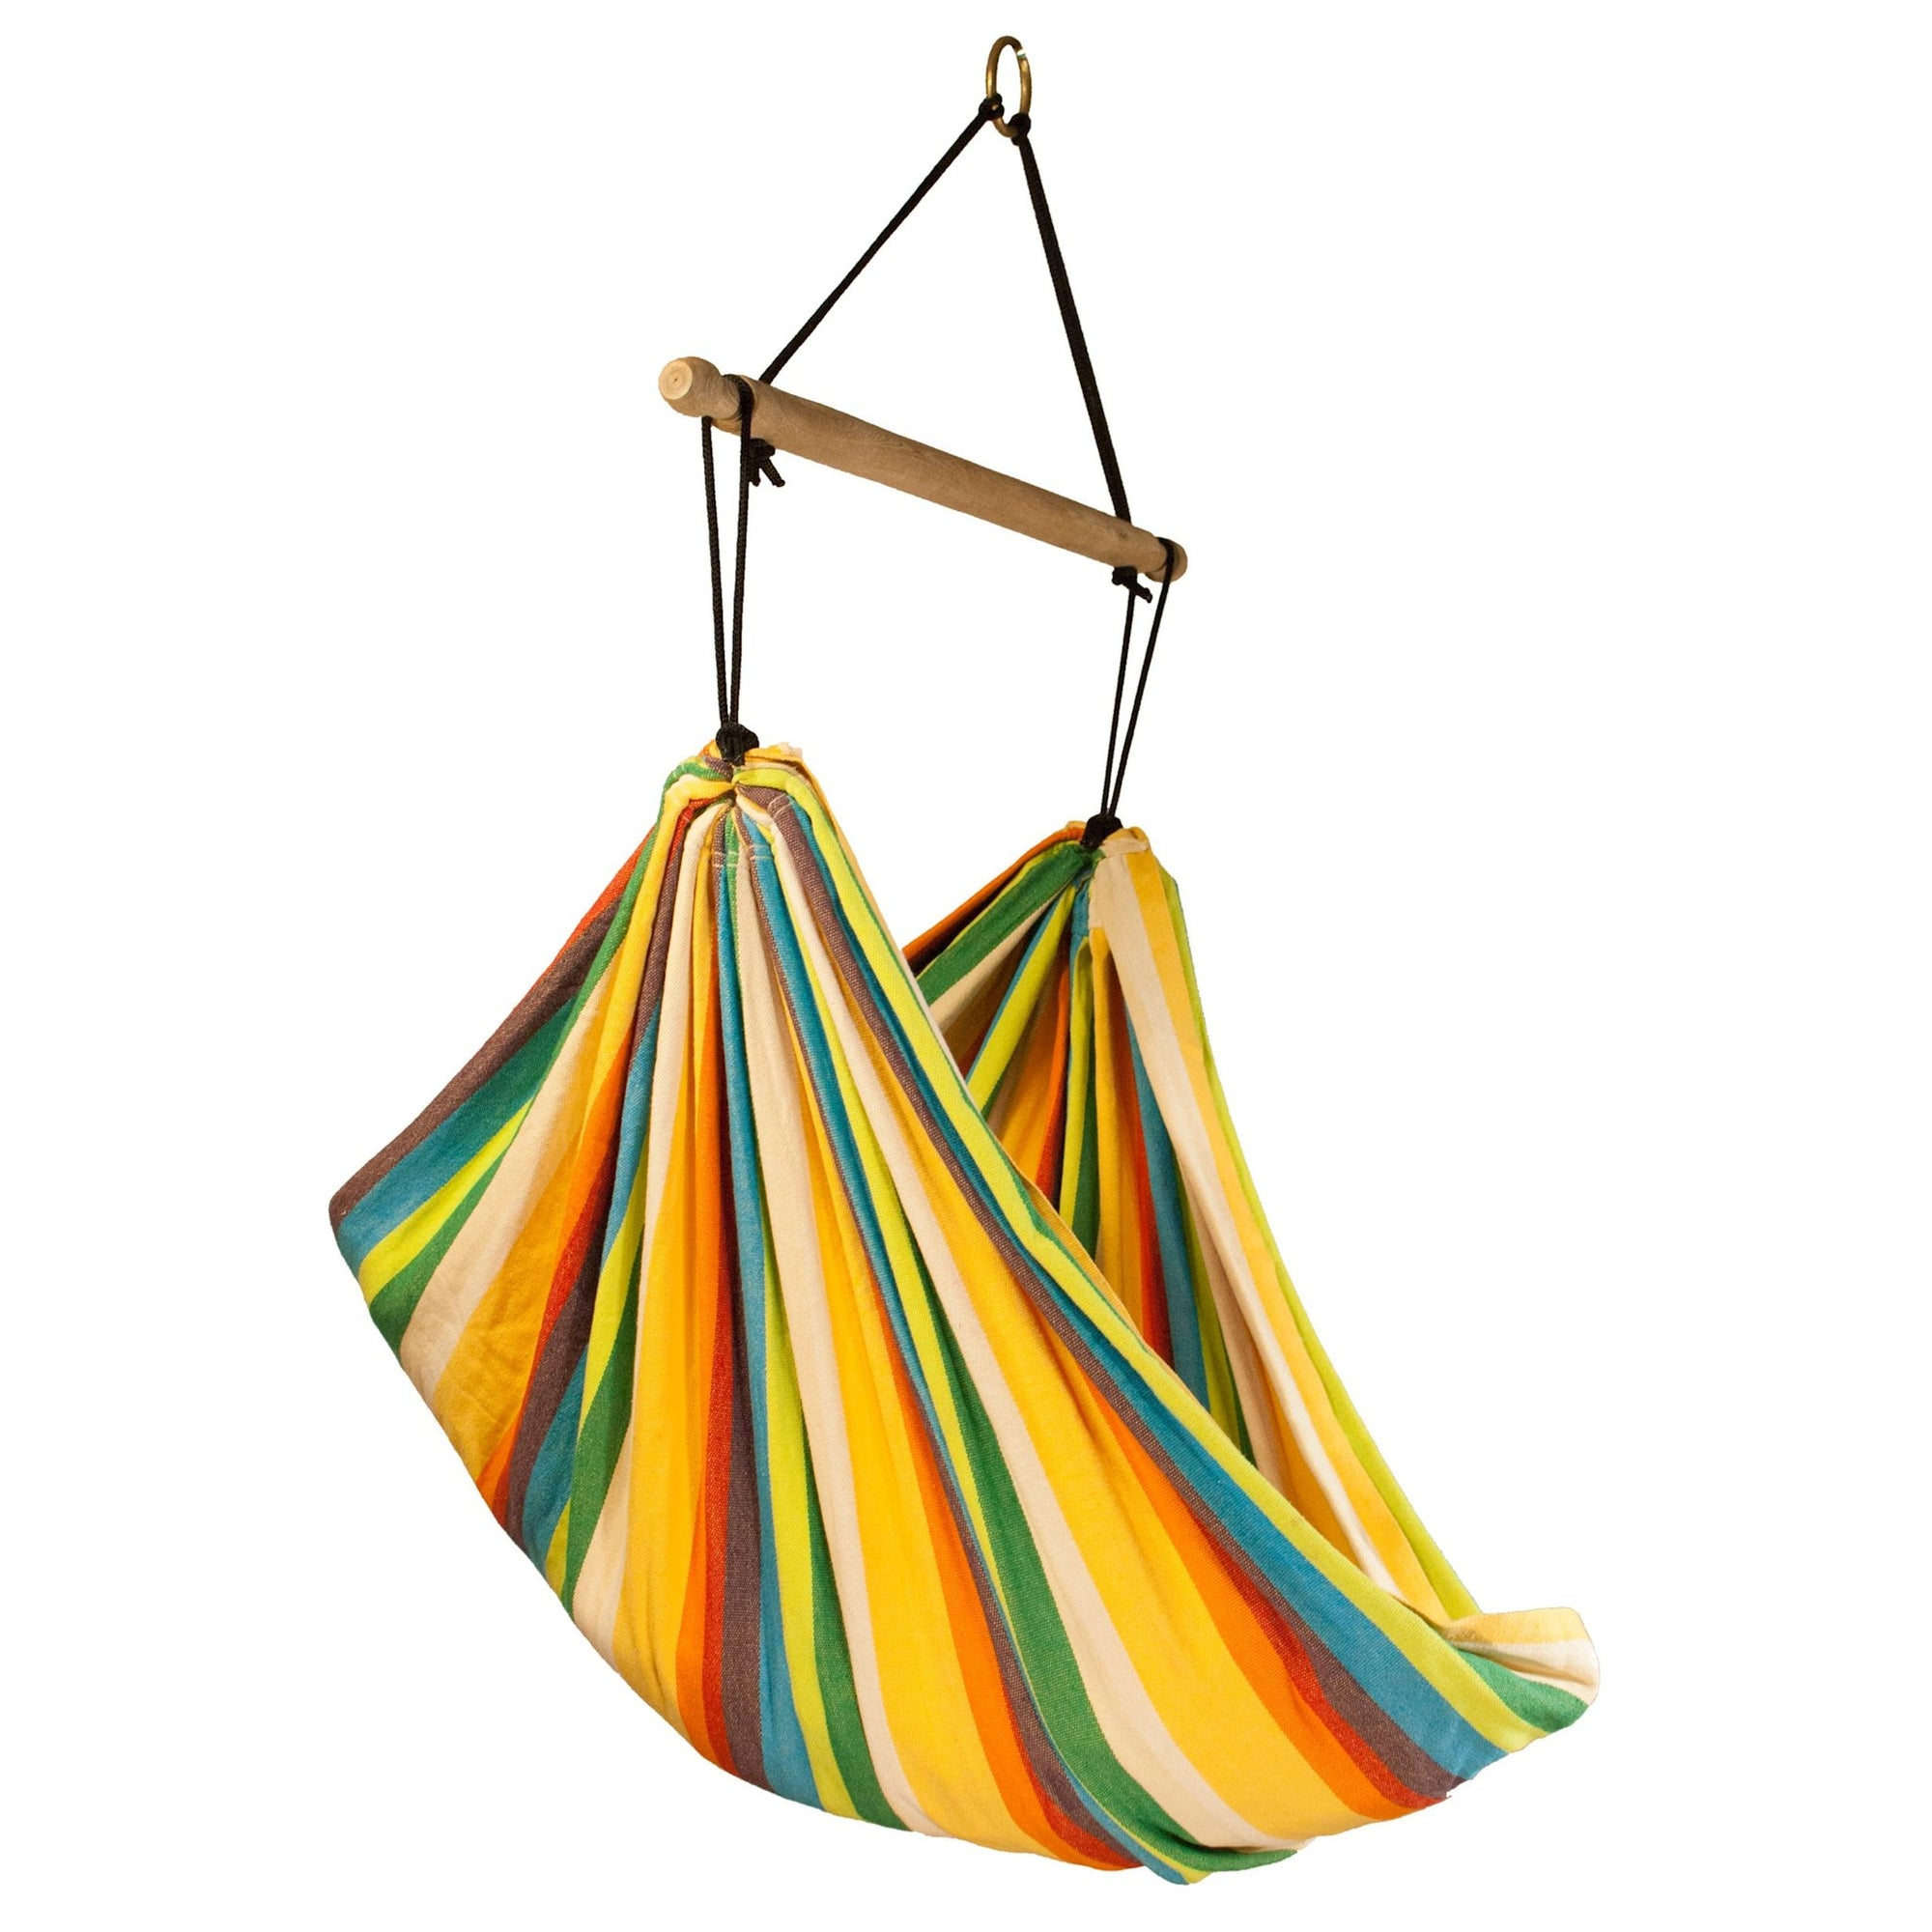 Playa Hammock Chair For Children